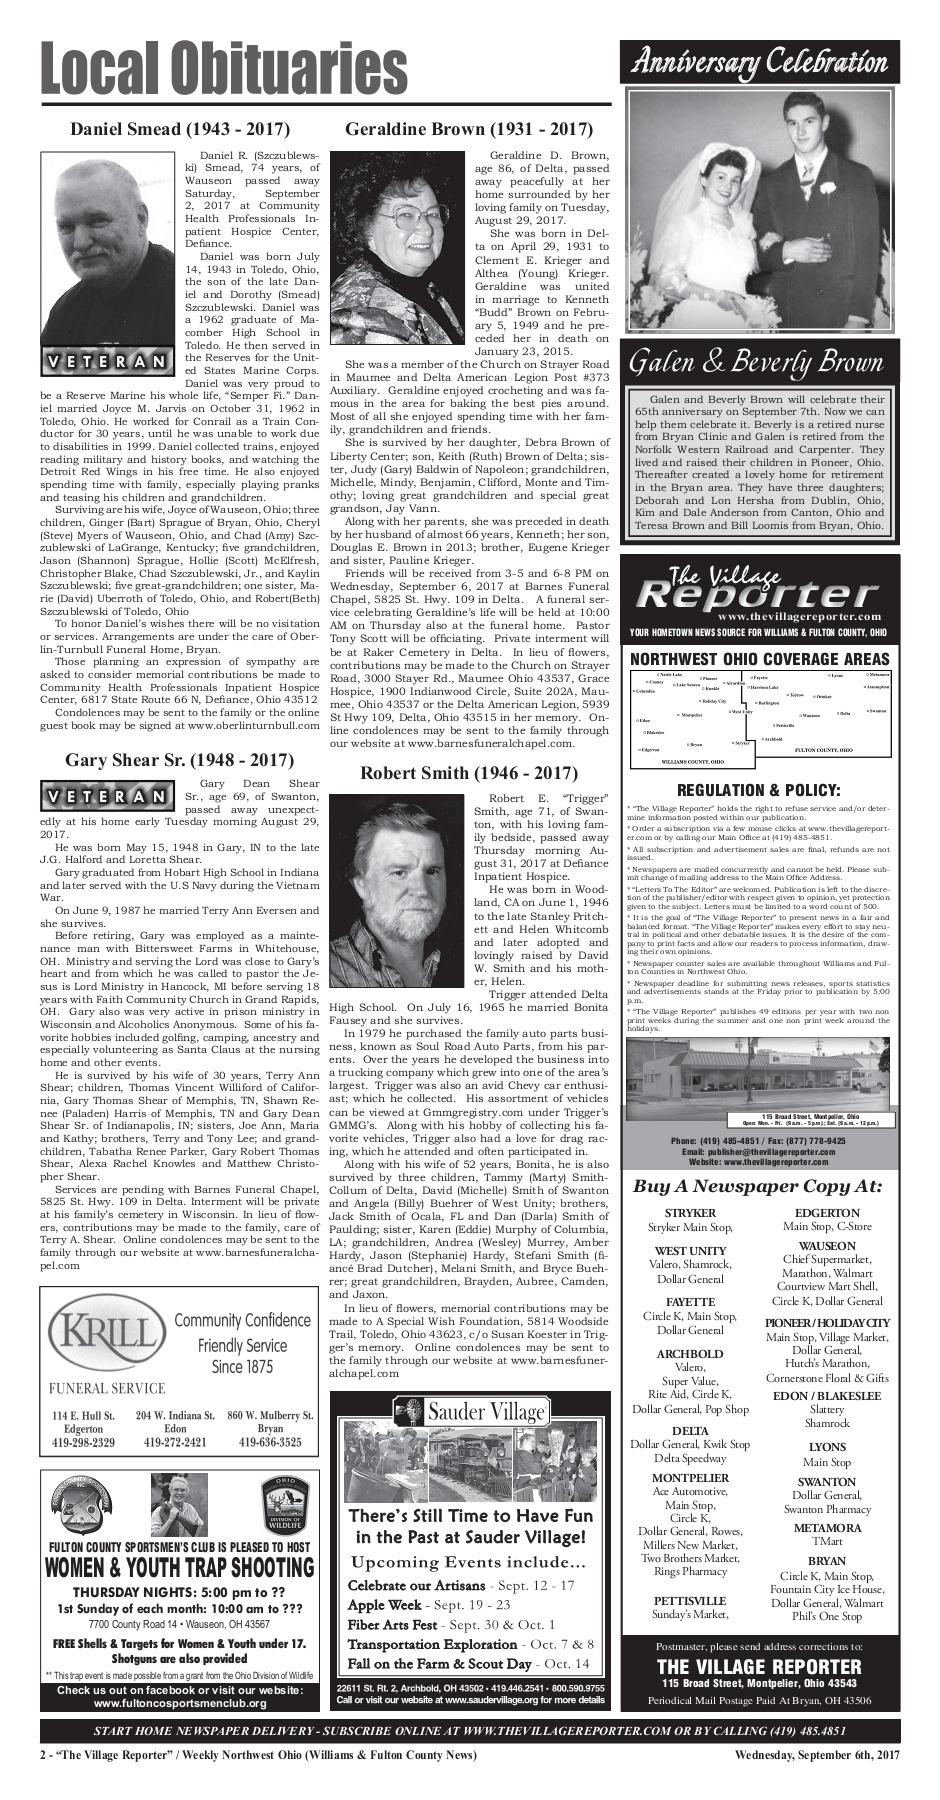 The Village Reporter - September 6th, 2017 Pages 1 - 40